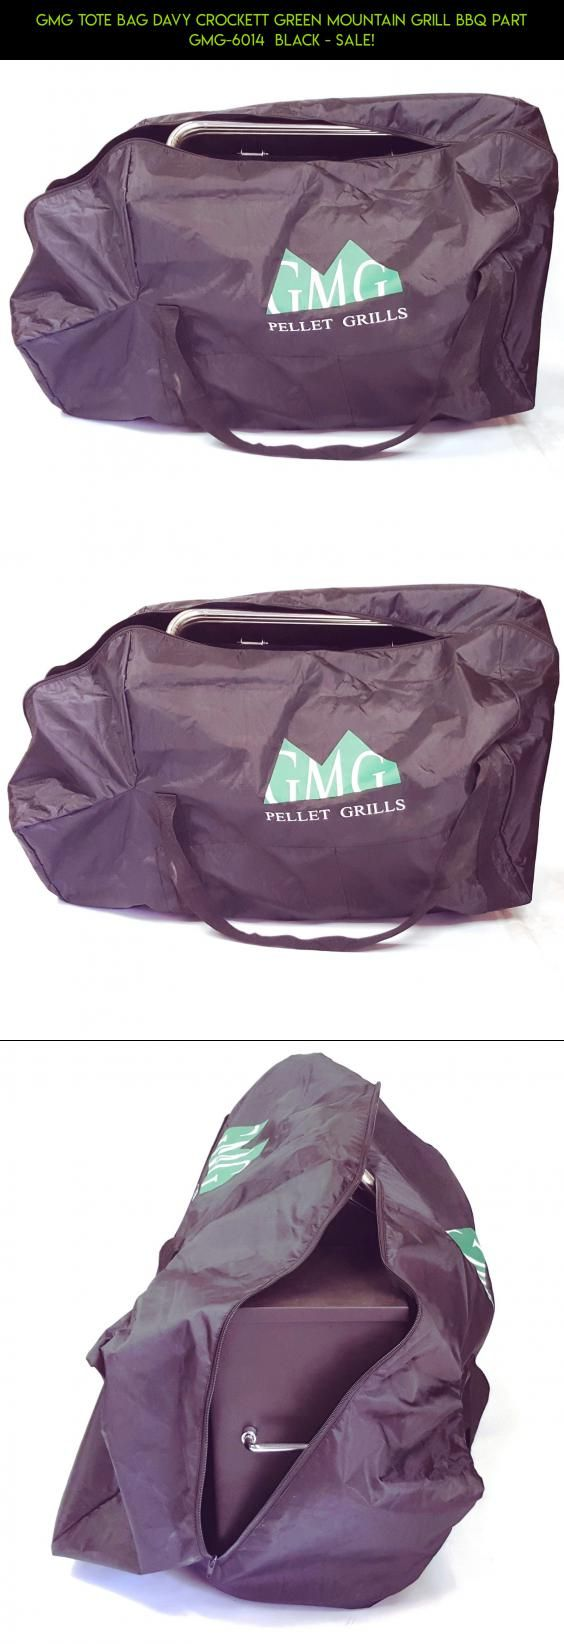 GMG TOTE BAG Davy Crockett Green Mountain Grill BBQ Part GMG-6014  BLACK - SALE! #camera #green #fpv #kit #racing #crockett #drone #technology #parts #grills #tech #products #plans #gadgets #mountain #davy #shopping